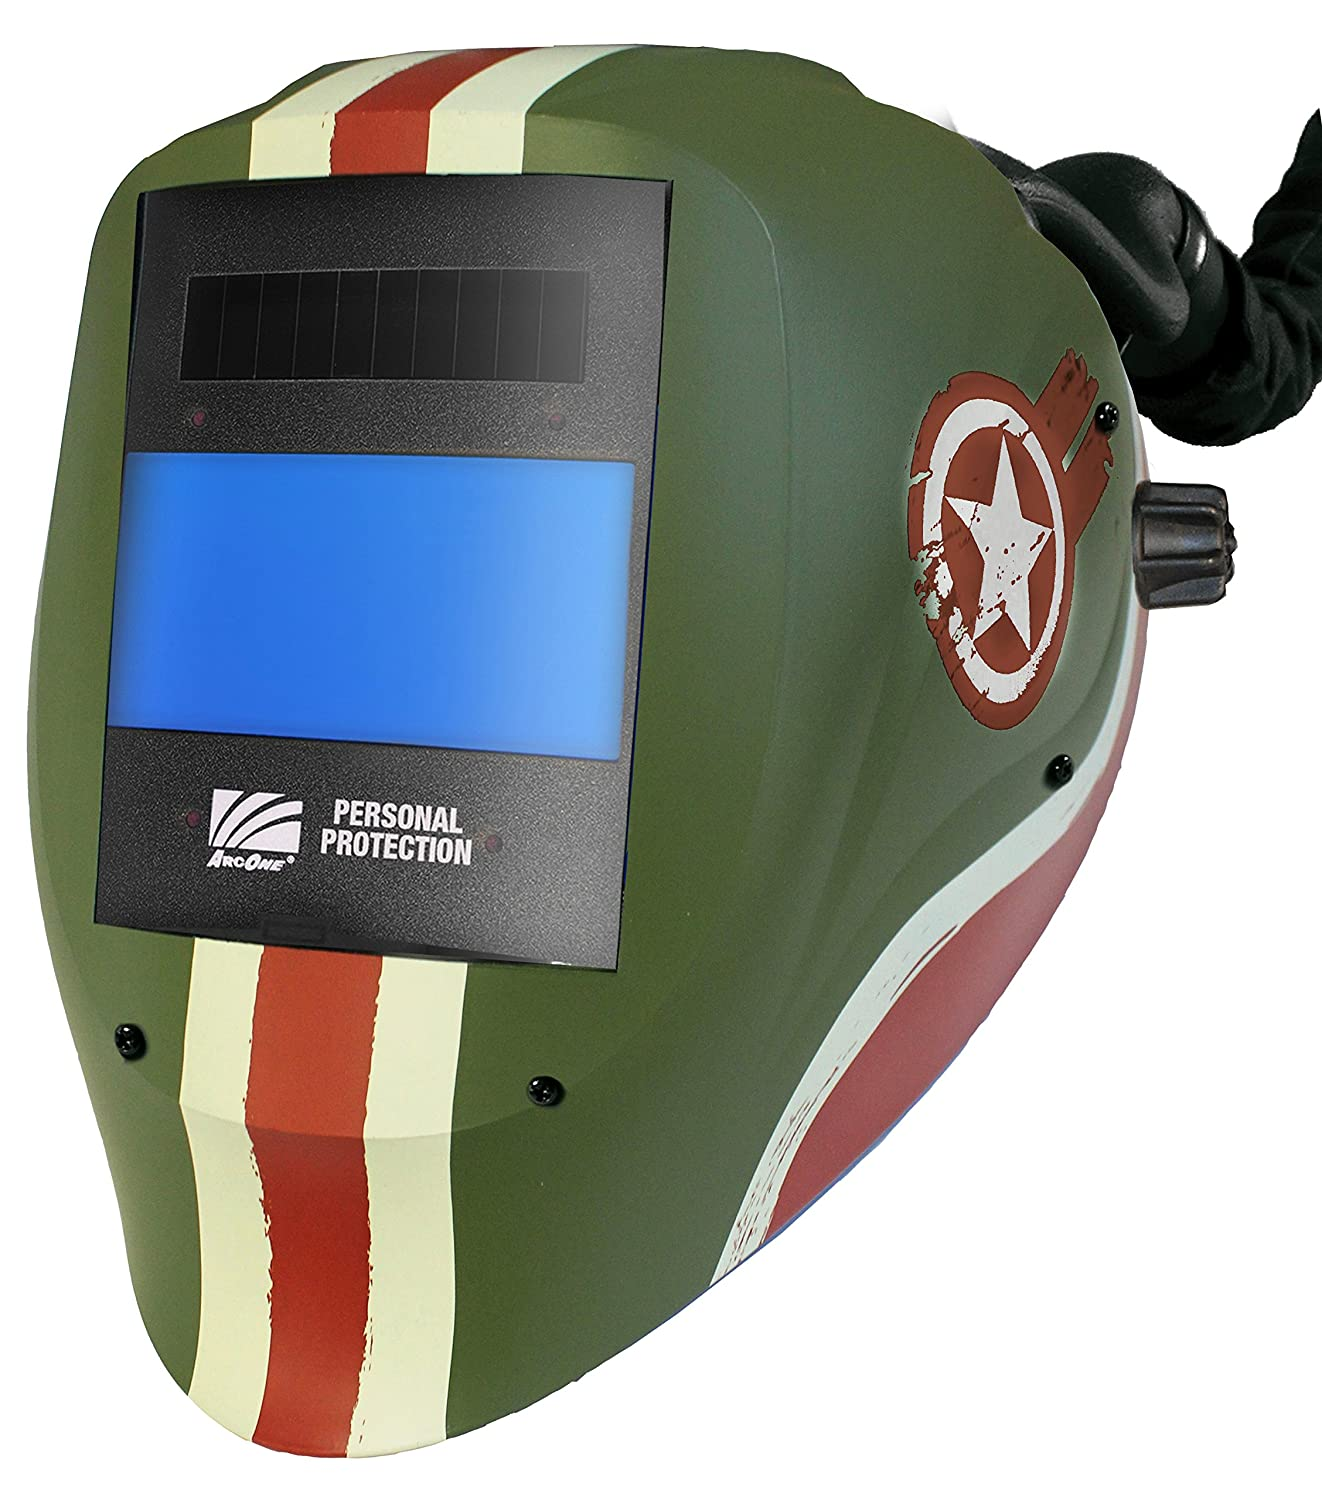 ArcOne AP-X54V-1500 Vision Welding Helmet Shell with 5 x 4 Digital ASIC Auto-Darkening Filter and AirPlus Respiratory System Black Builders World Wholesale Distribution AP-X54V-1500AON